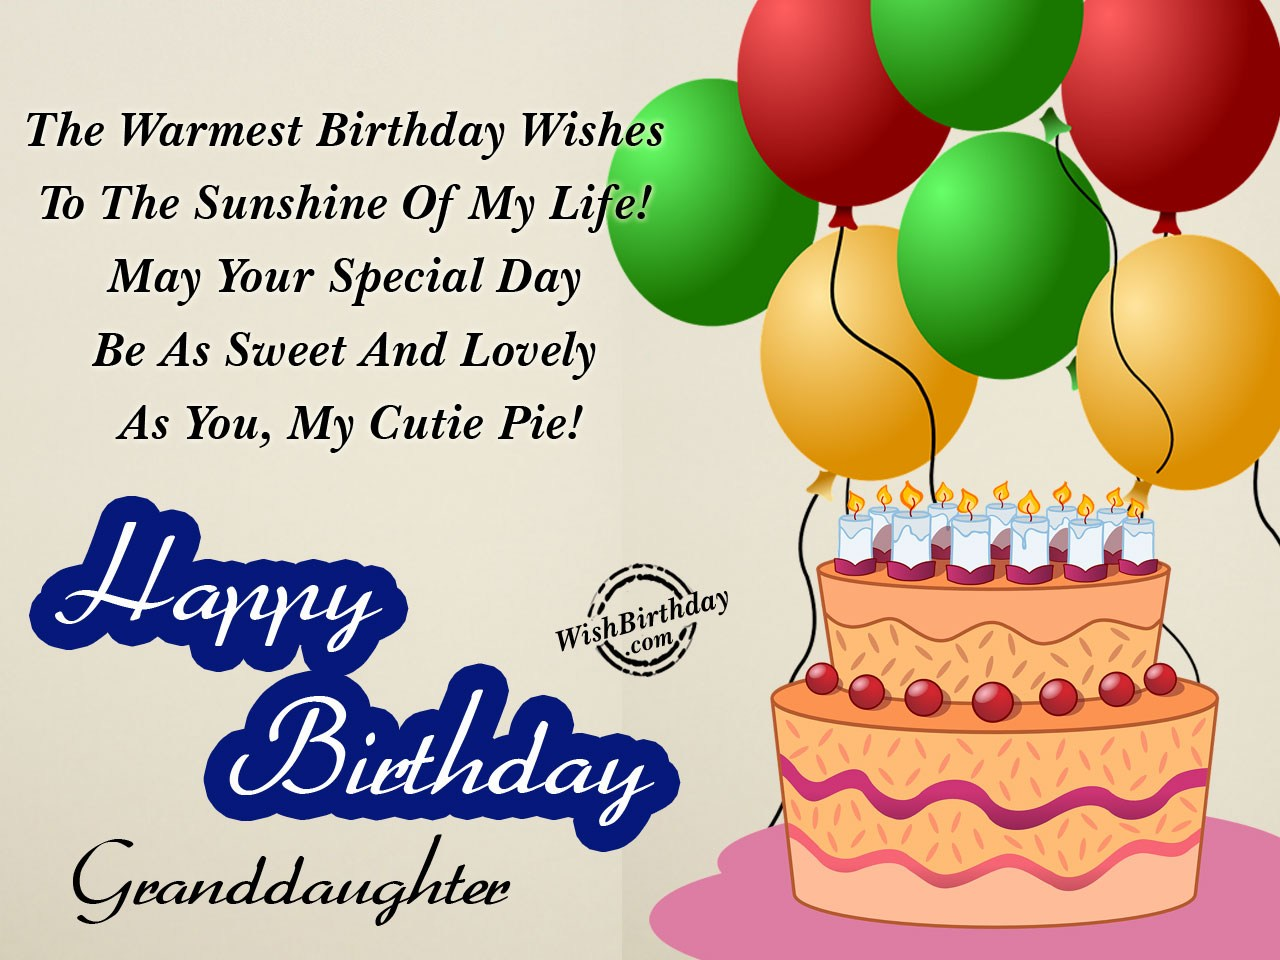 The Warmest Birthday Wishes To Sunshine Of My Life Happy Granddaughter